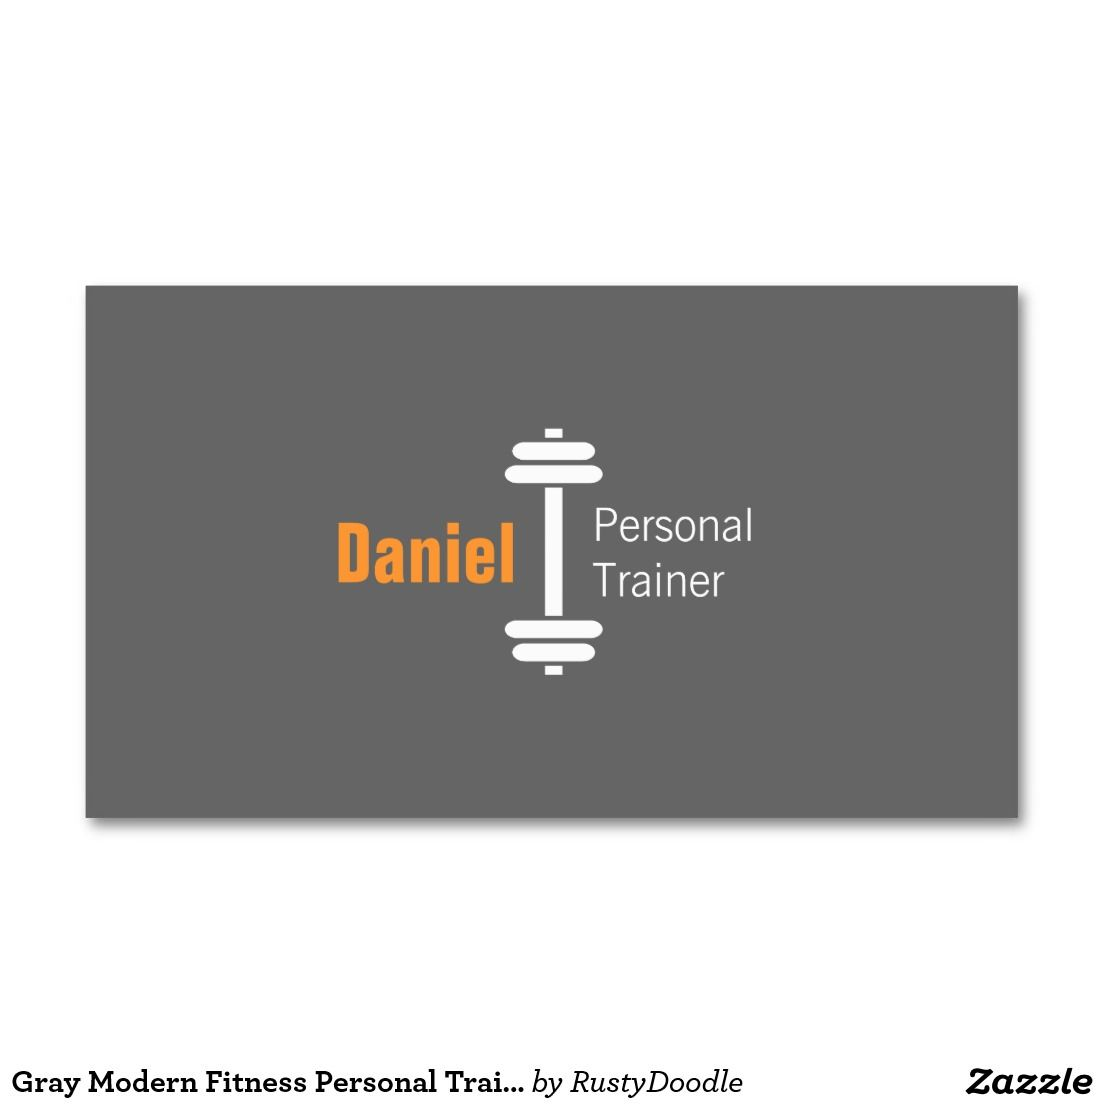 Gray Modern Fitness Personal Trainer Weights Business Card Zazzle Com Fitness Business Card Personal Trainer Big Muscle Training